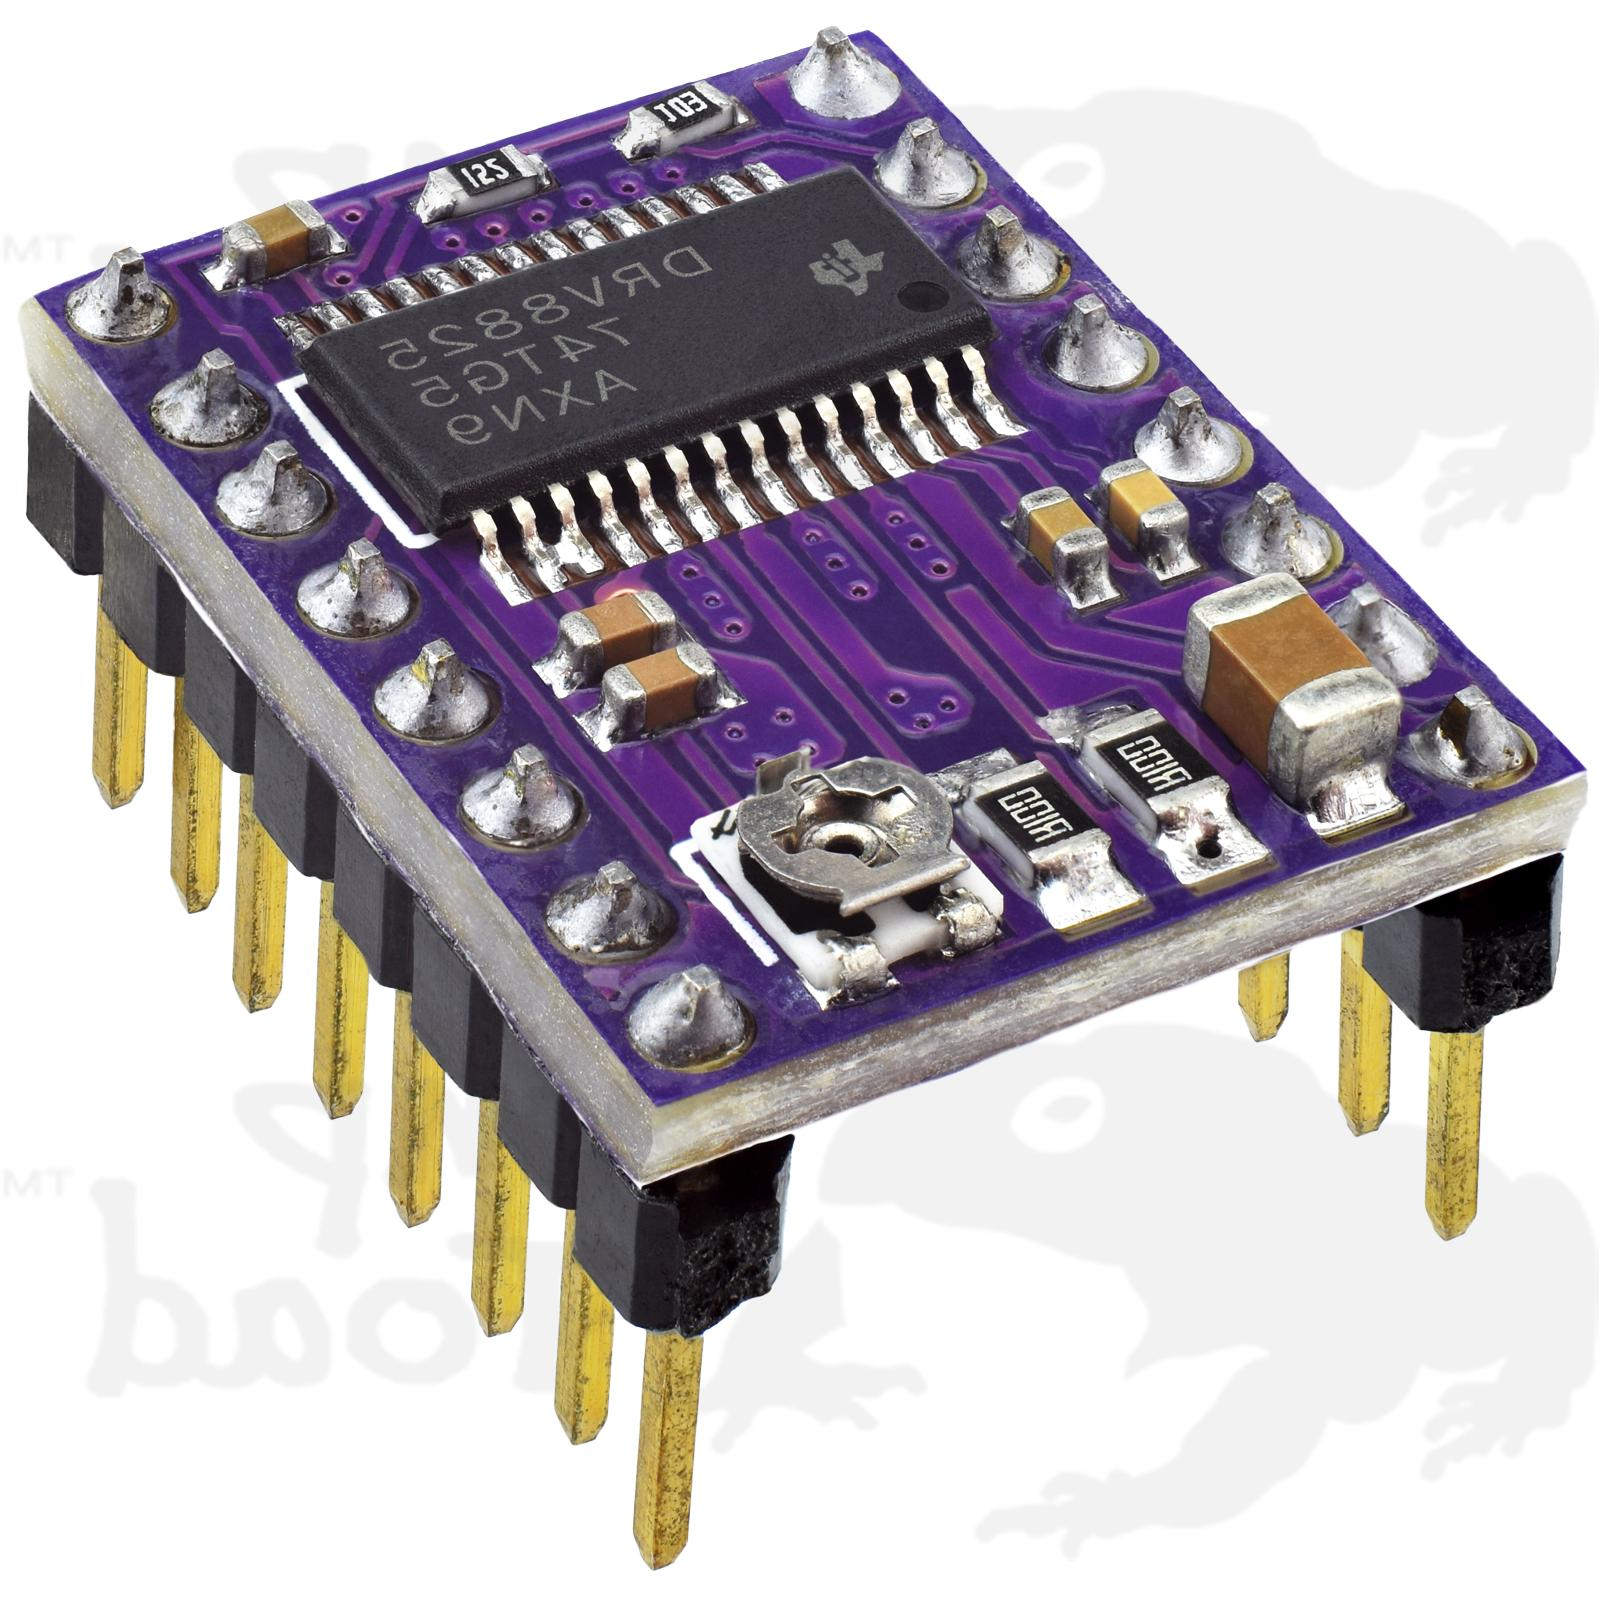 Genuine MKS 3D Printer Controller Board with Drivers